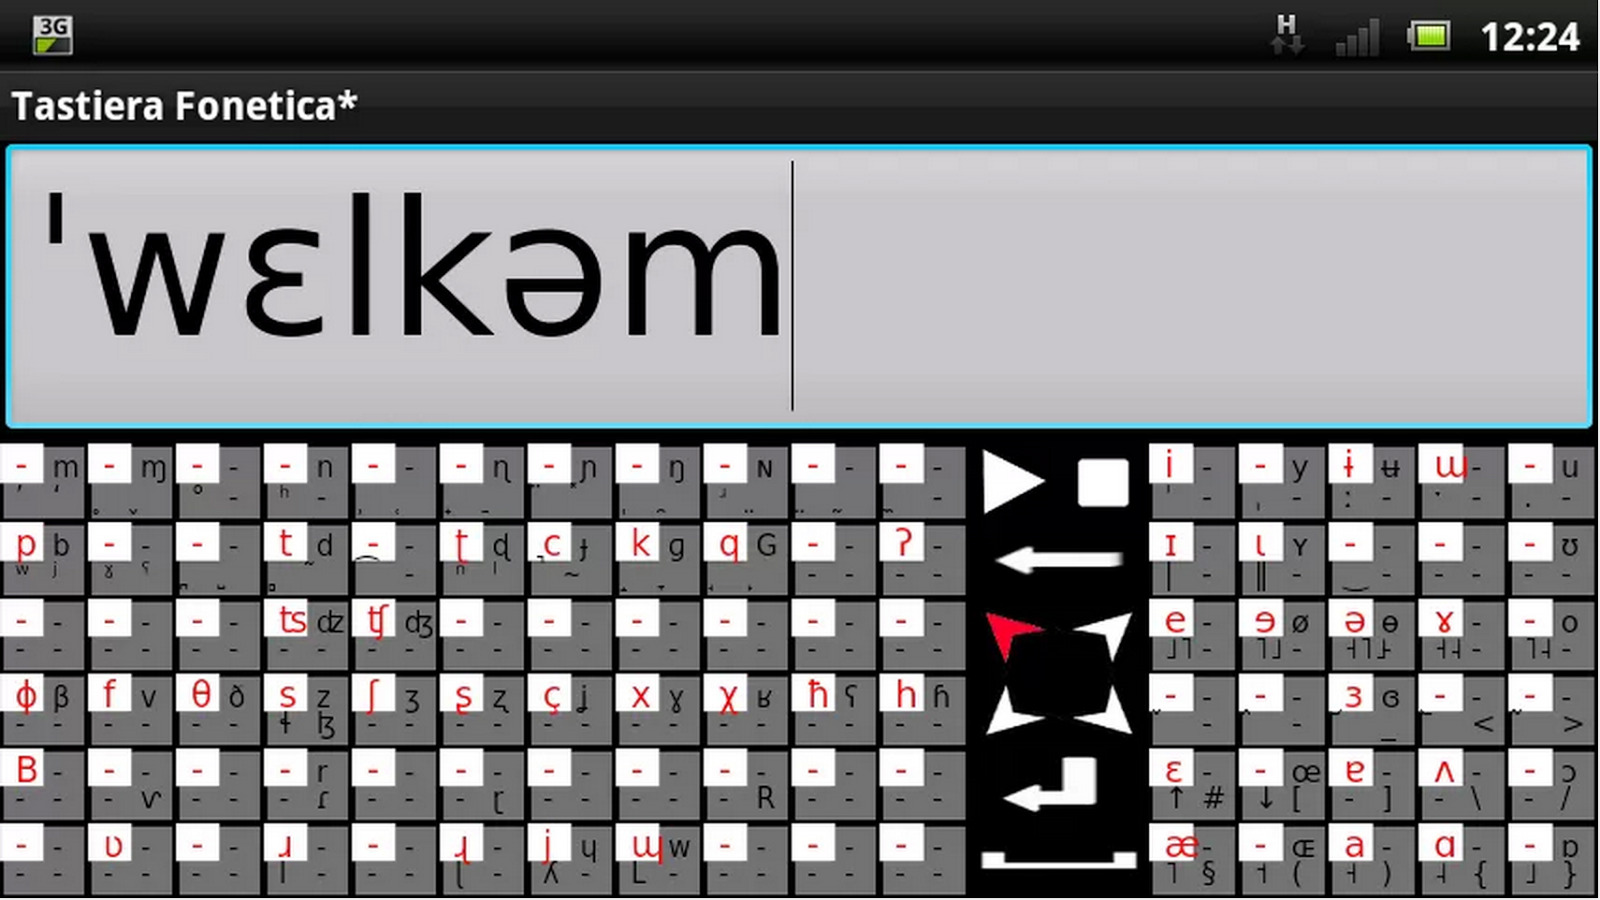 Ipa phonetic keyboard lite android apps on google play ipa phonetic keyboard lite screenshot biocorpaavc Images